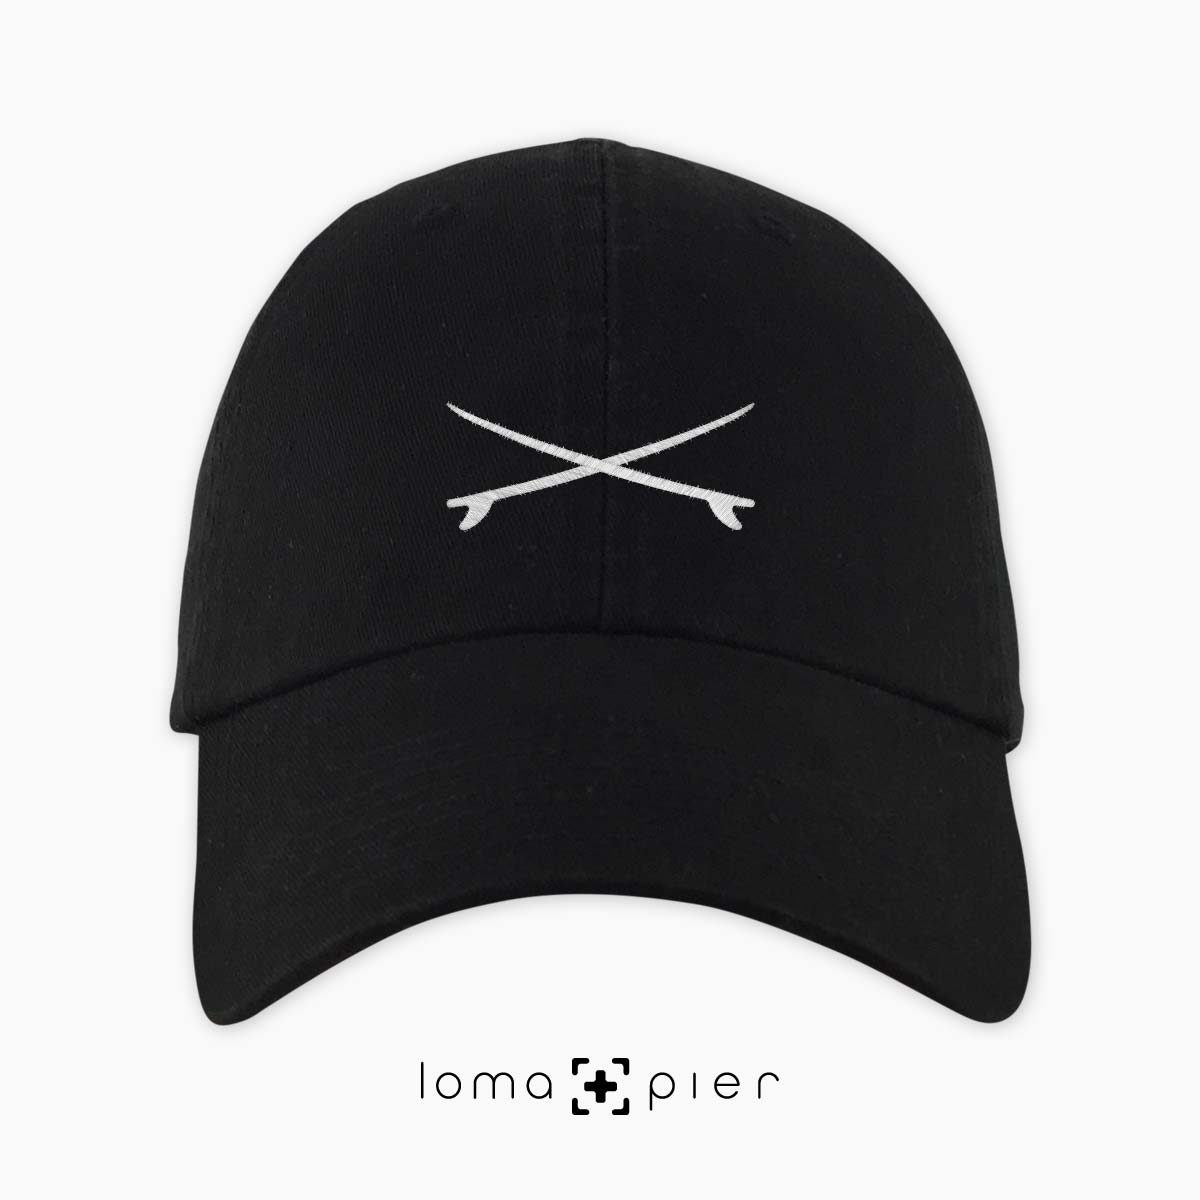 X MARKS THE SPOT icon embroidered on a black dad hat by loma+pier hat store made in the USA